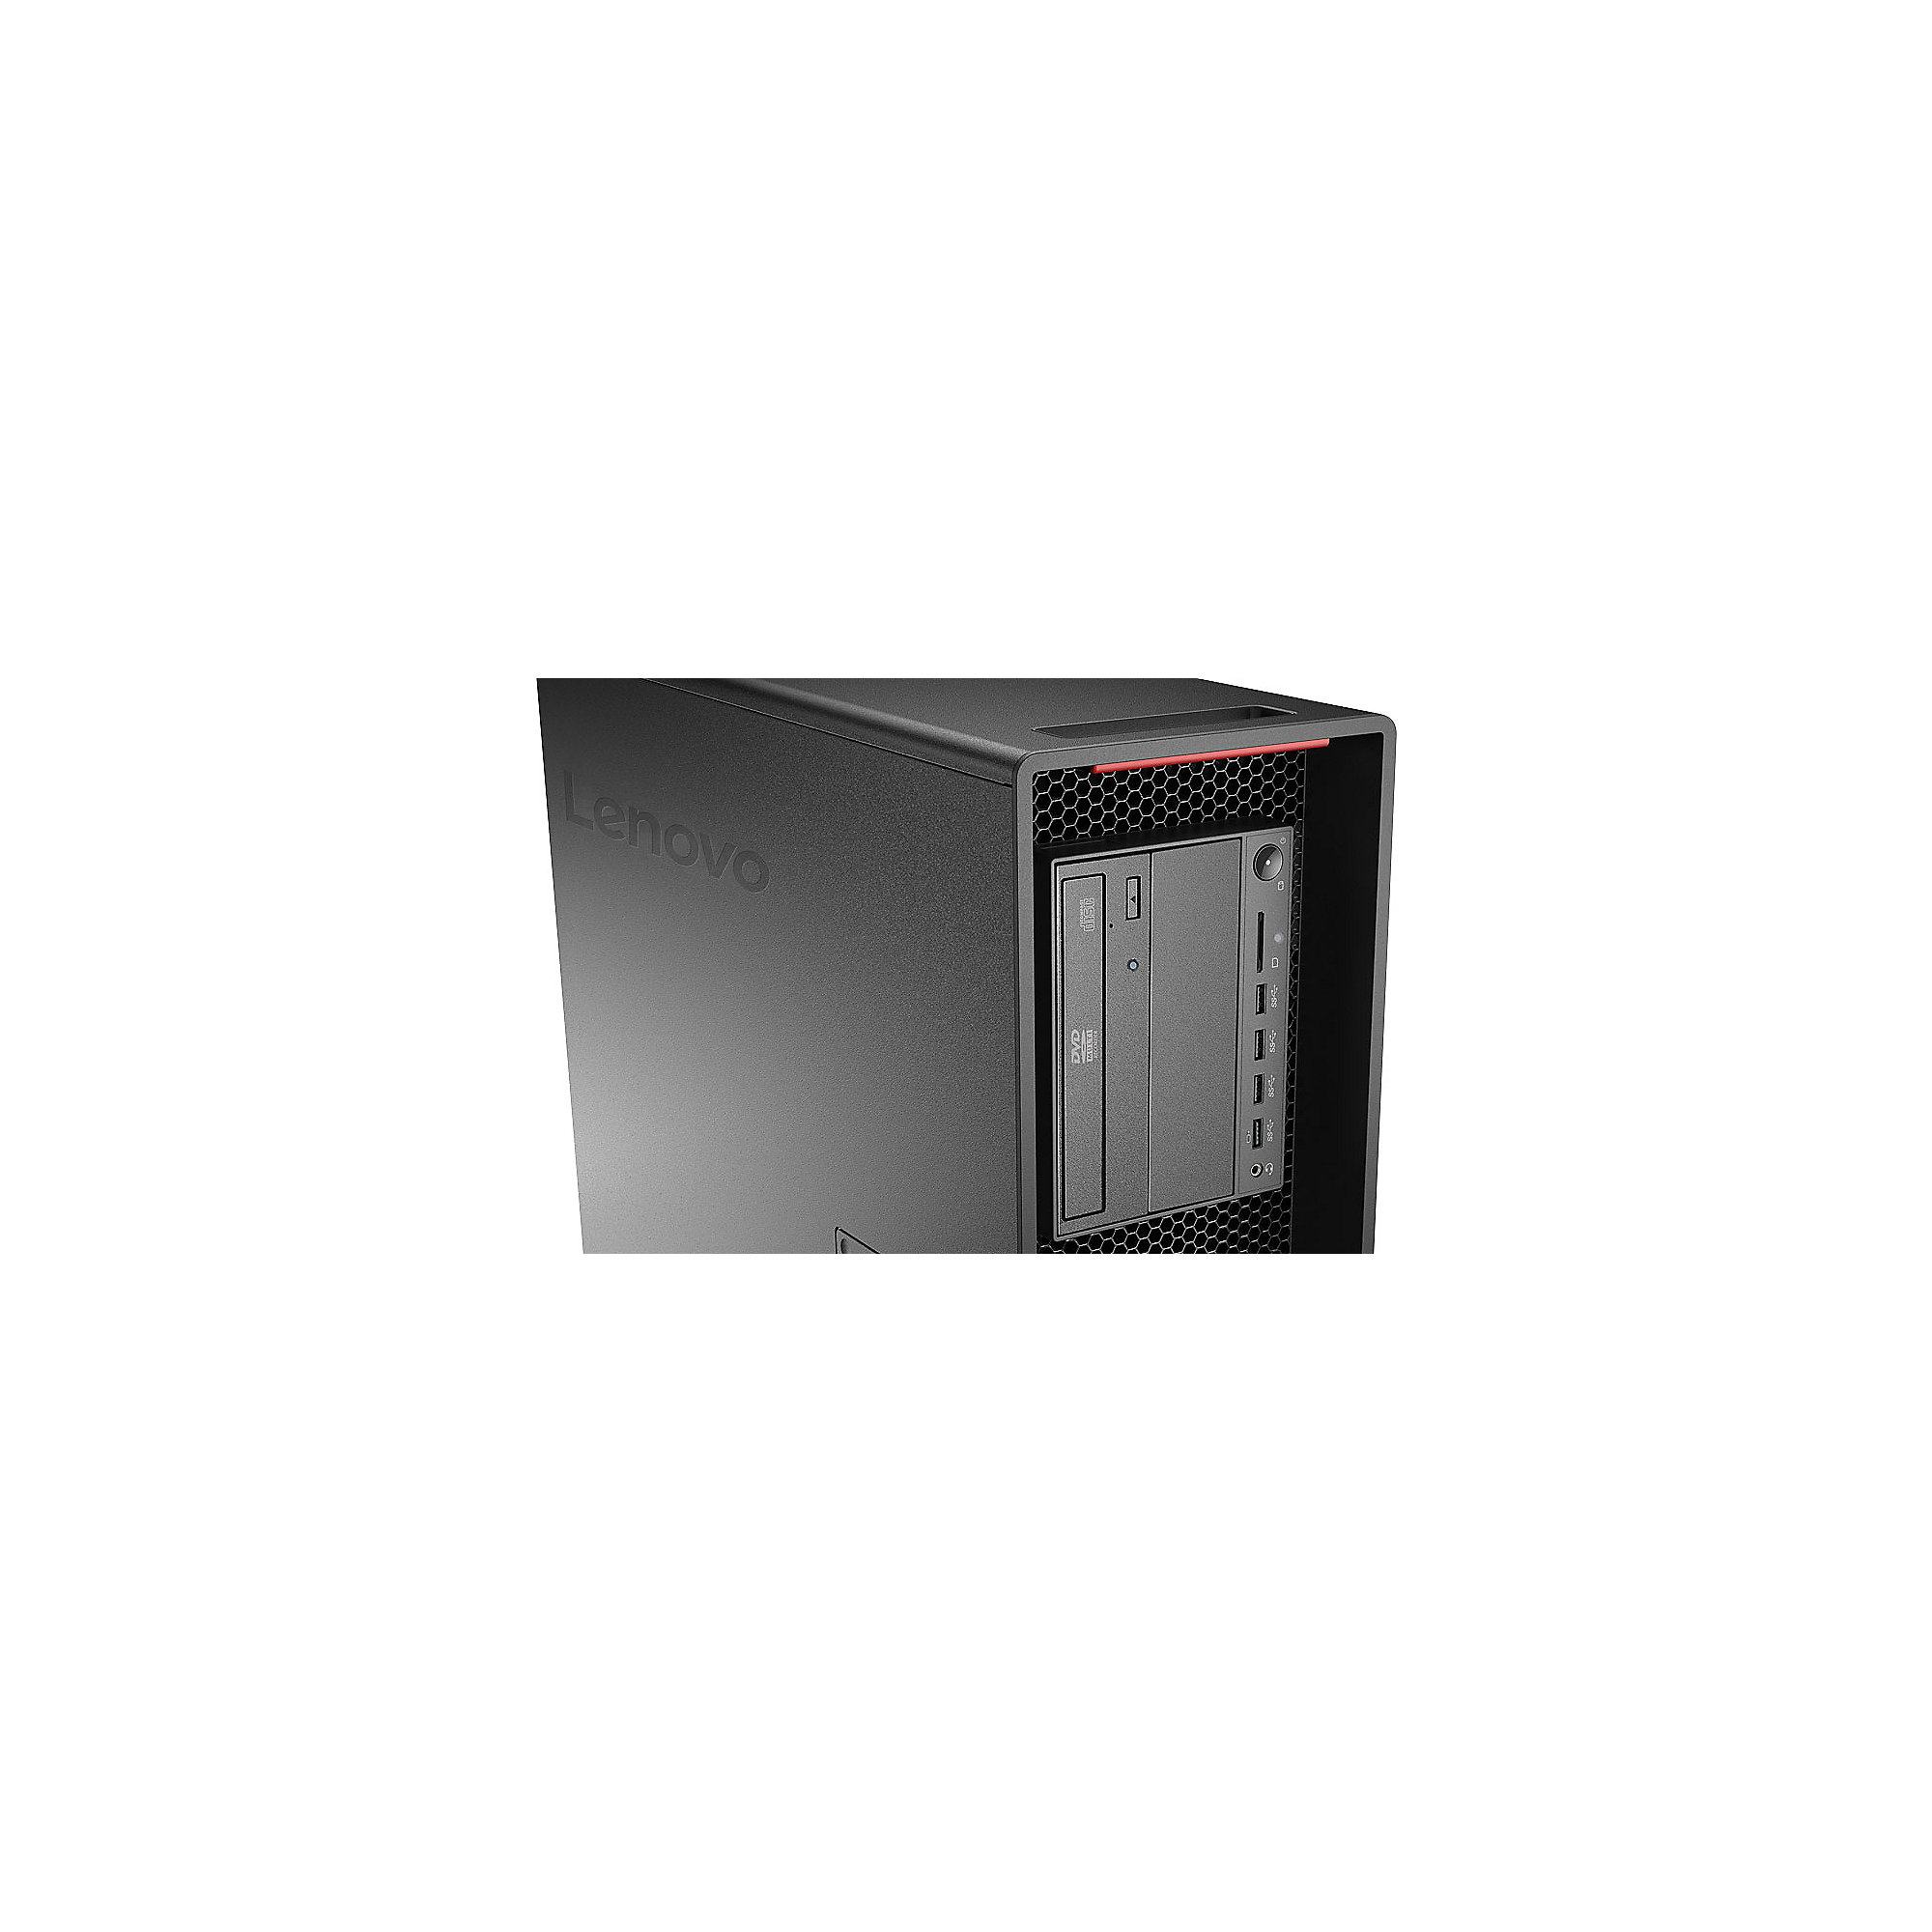 Lenovo ThinkStation P510 Tower - Xeon E5-2620v4 8GB/256GB SSD W7P/W10P